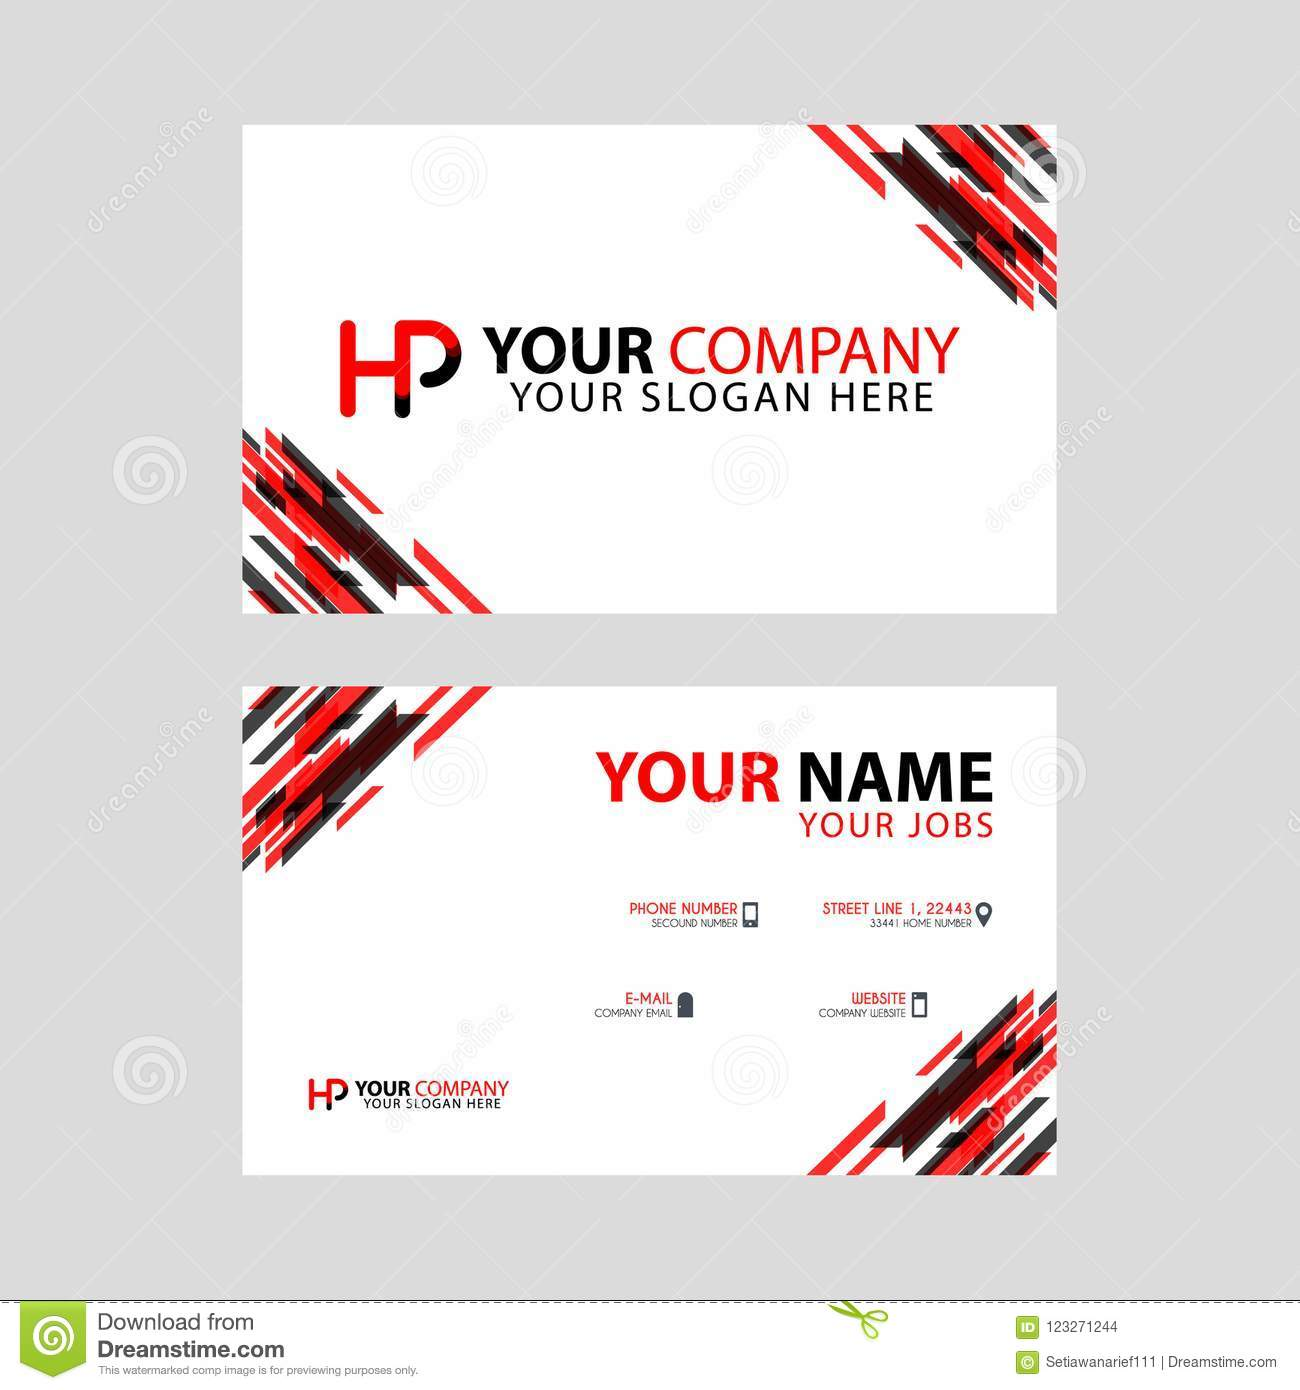 Logo Hp Design With A Black And Red Business Card With Horizontal